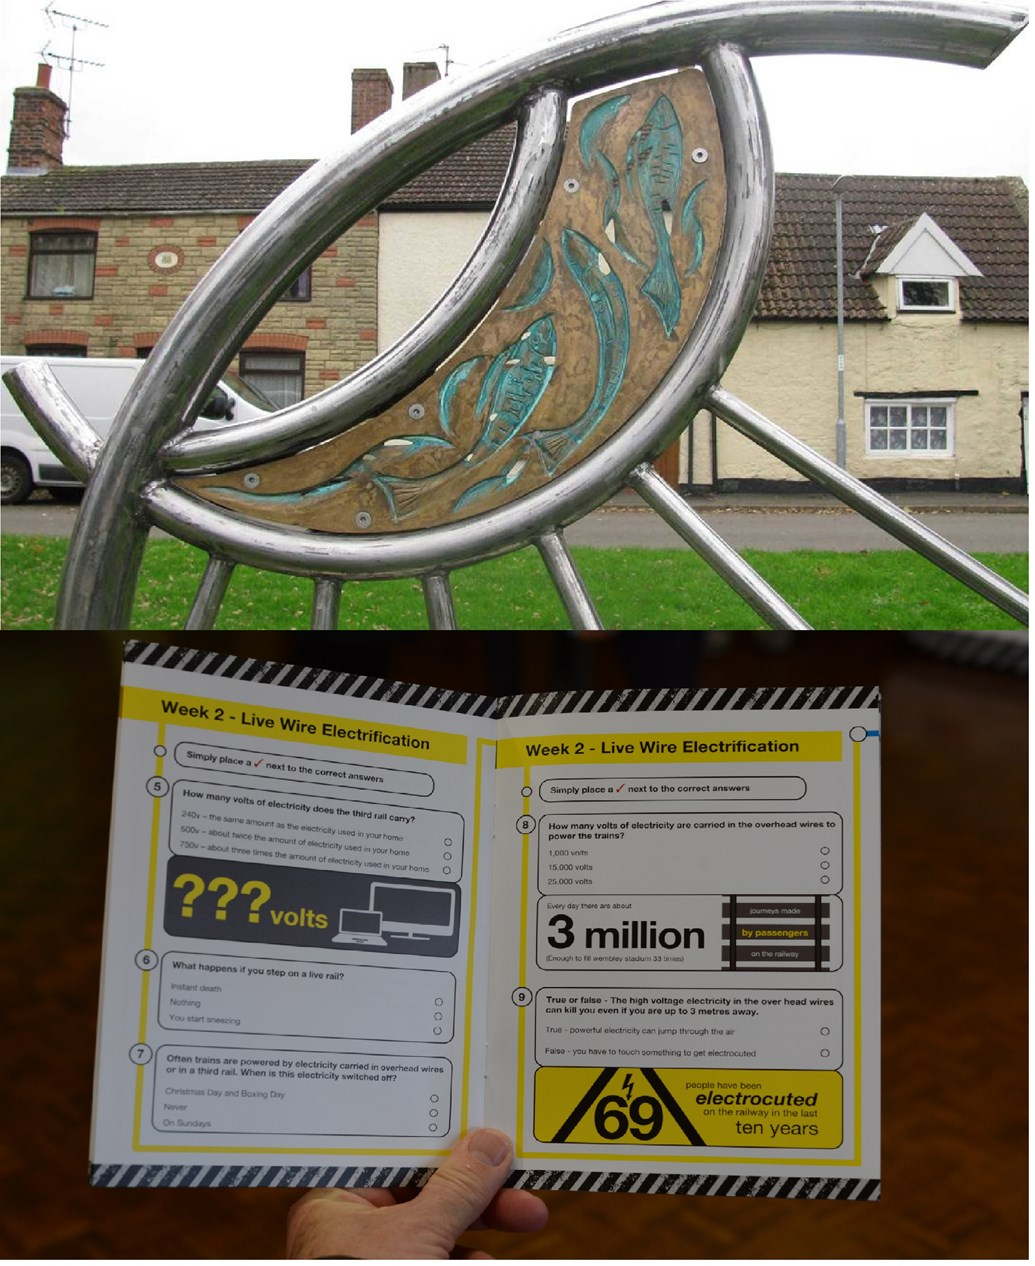 Network Rail to carry out community project in Corby: Network Rail to deliver community project in Corby. Top image: Sculpture by Richard Janes, community artist. Bottom image: Example of classroom materials from Tackling Track Safety